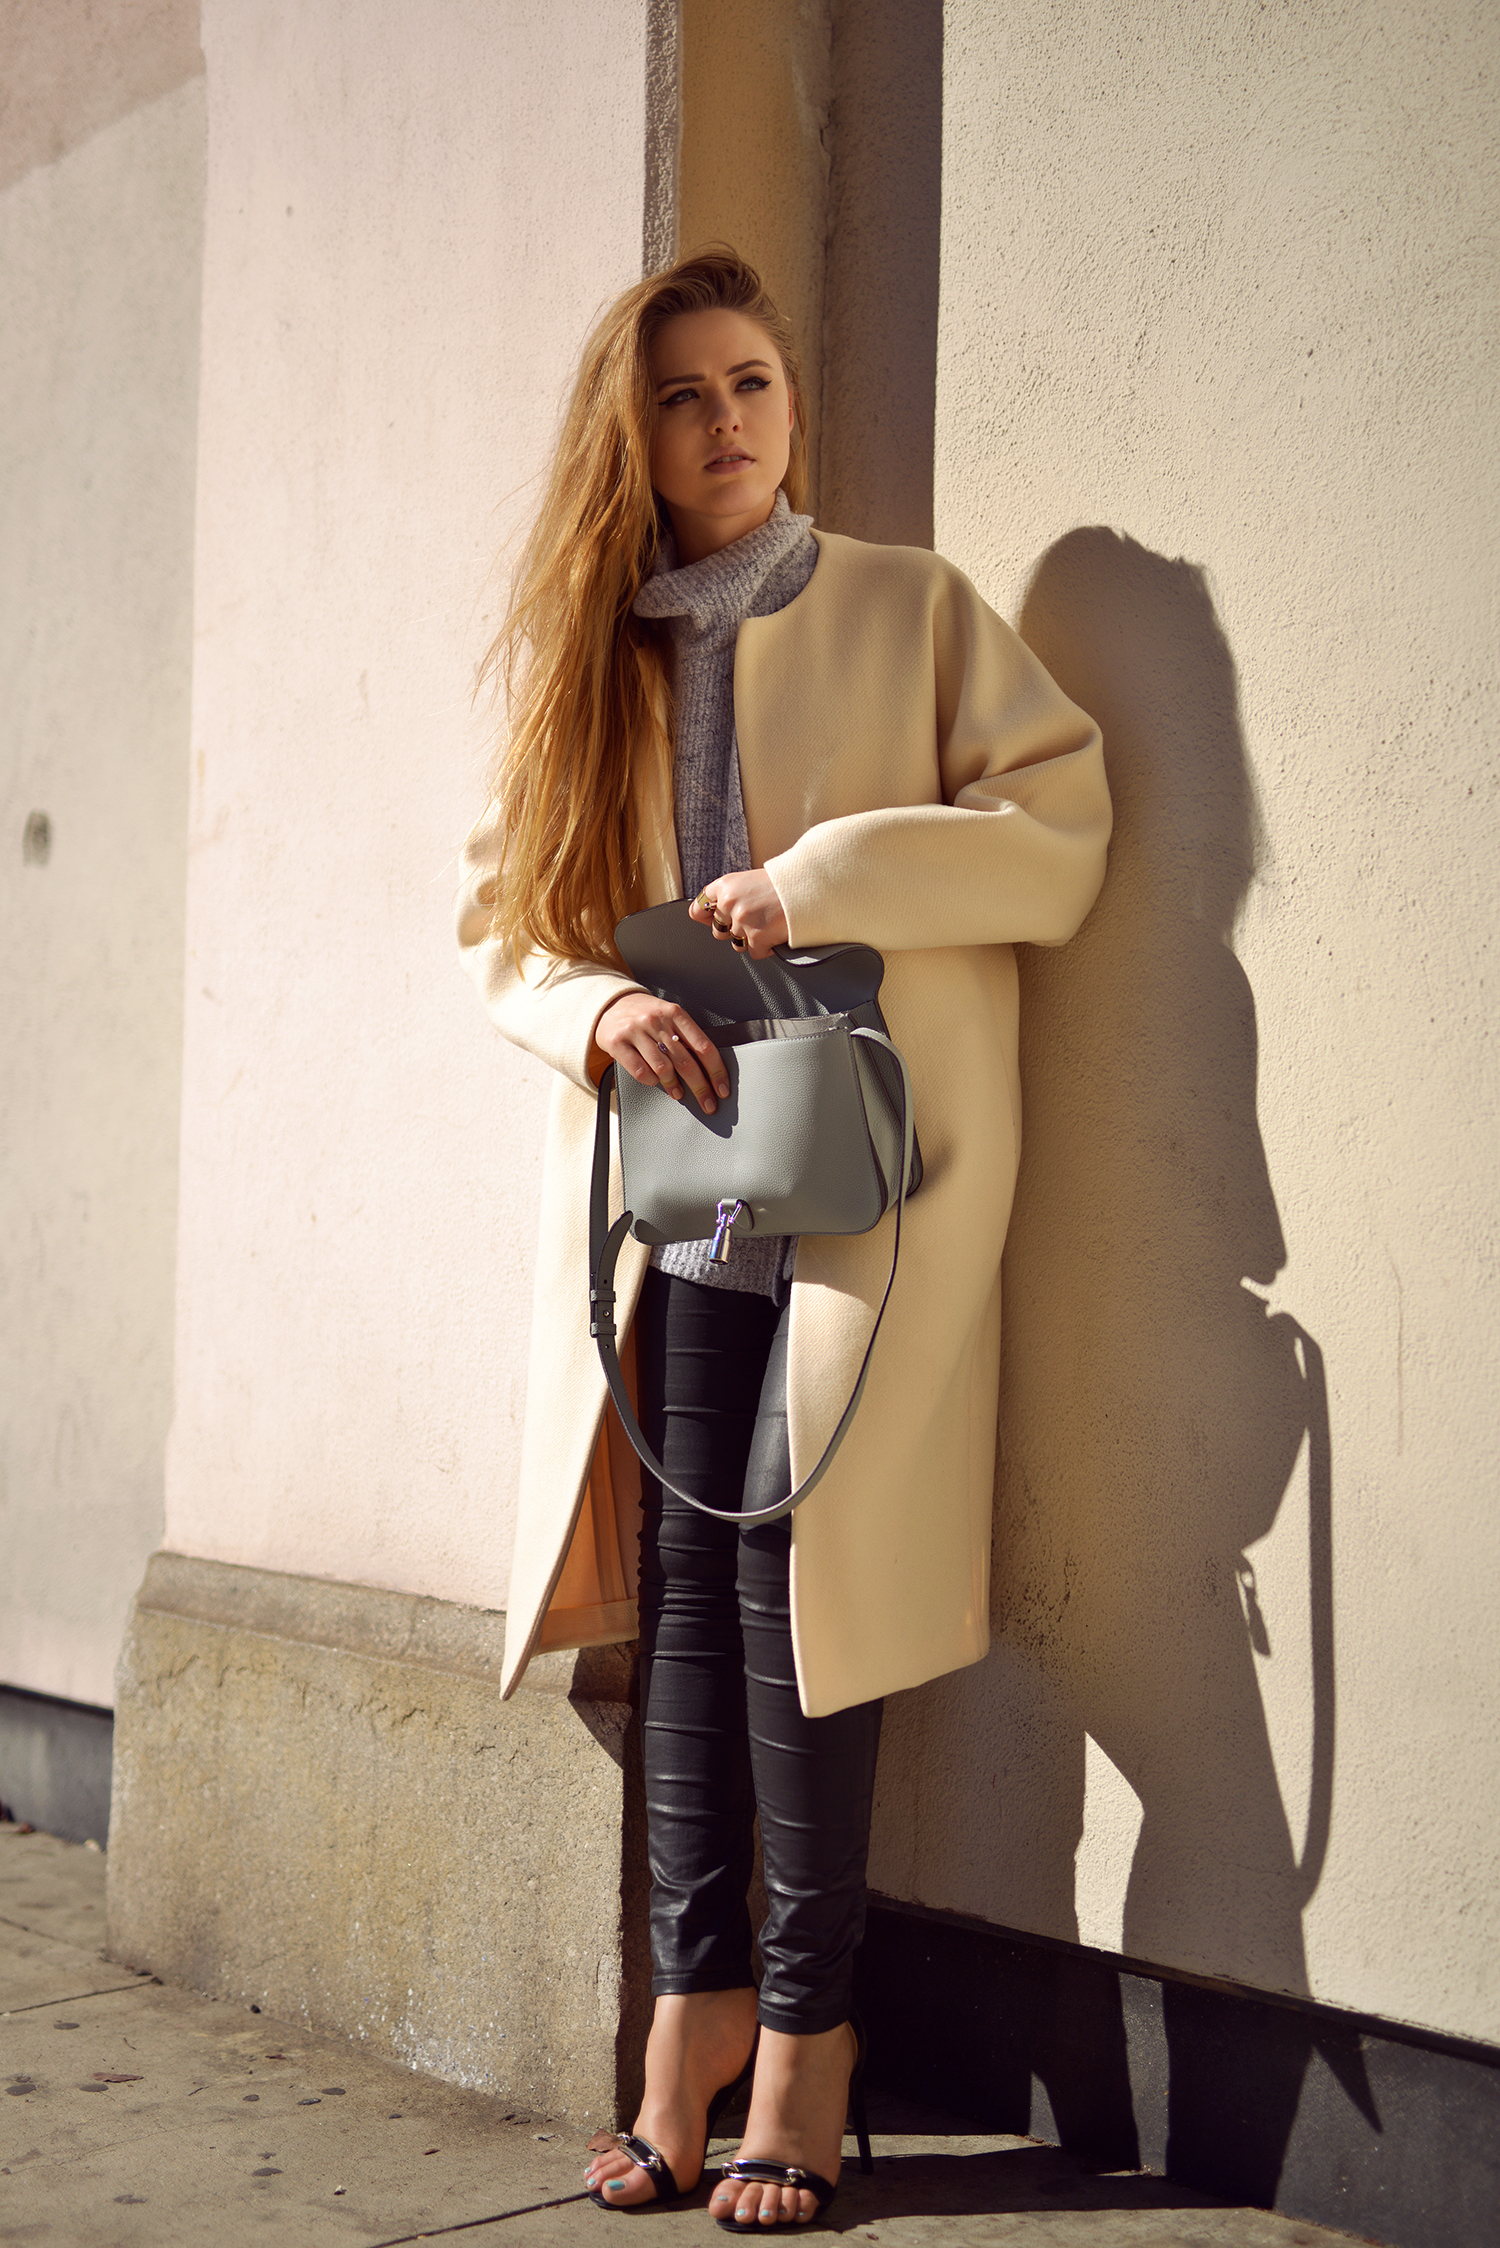 Street Style, March 2015: Kristina Bazan is wearing a creme Chloé coat with black Zara leather trousers and a pair of Balenciaga heels